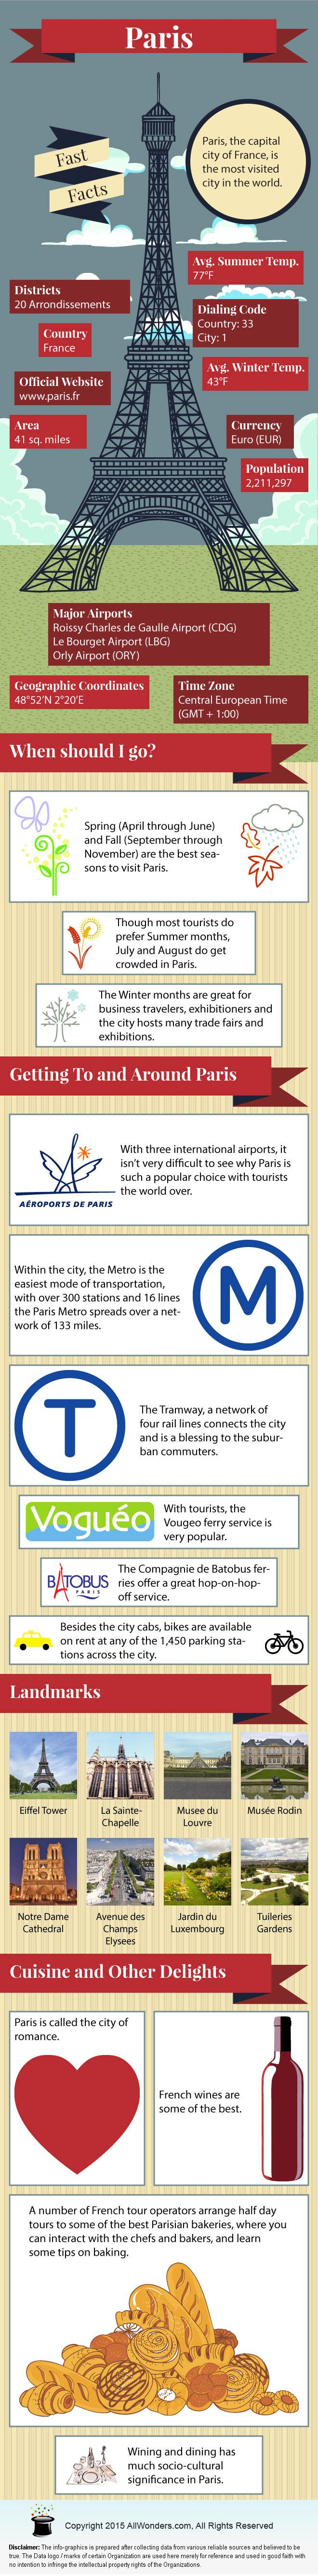 Paris Travel Infographic                                                       …                                                                                                                                                                                 More